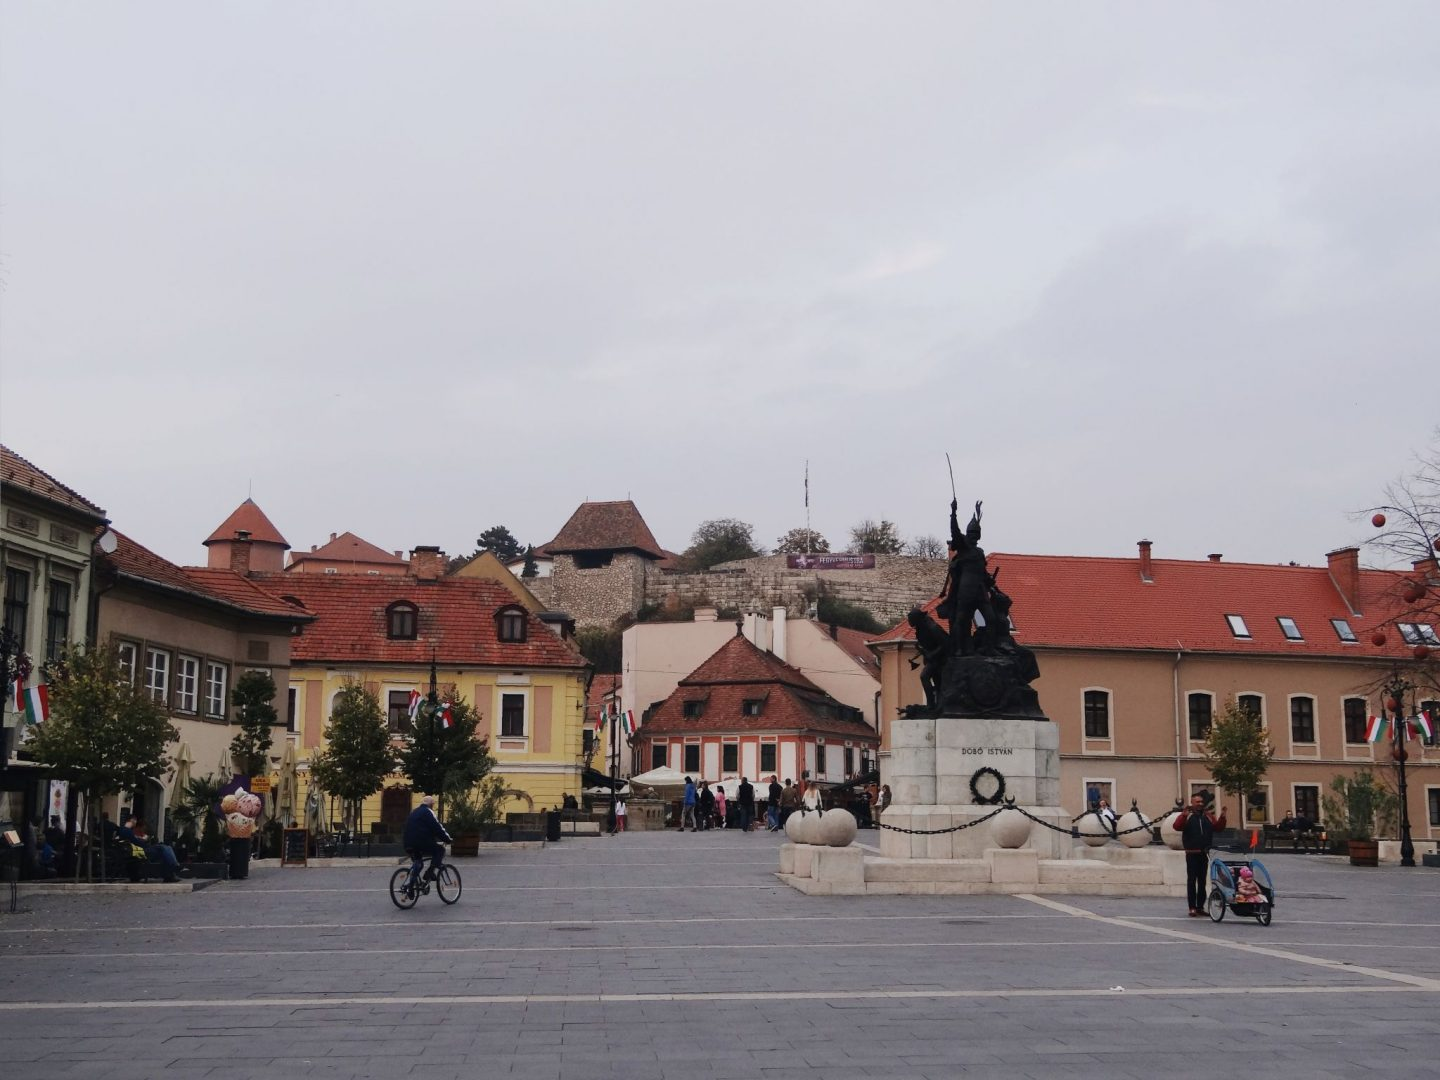 Dobo square in Eger, Hungary